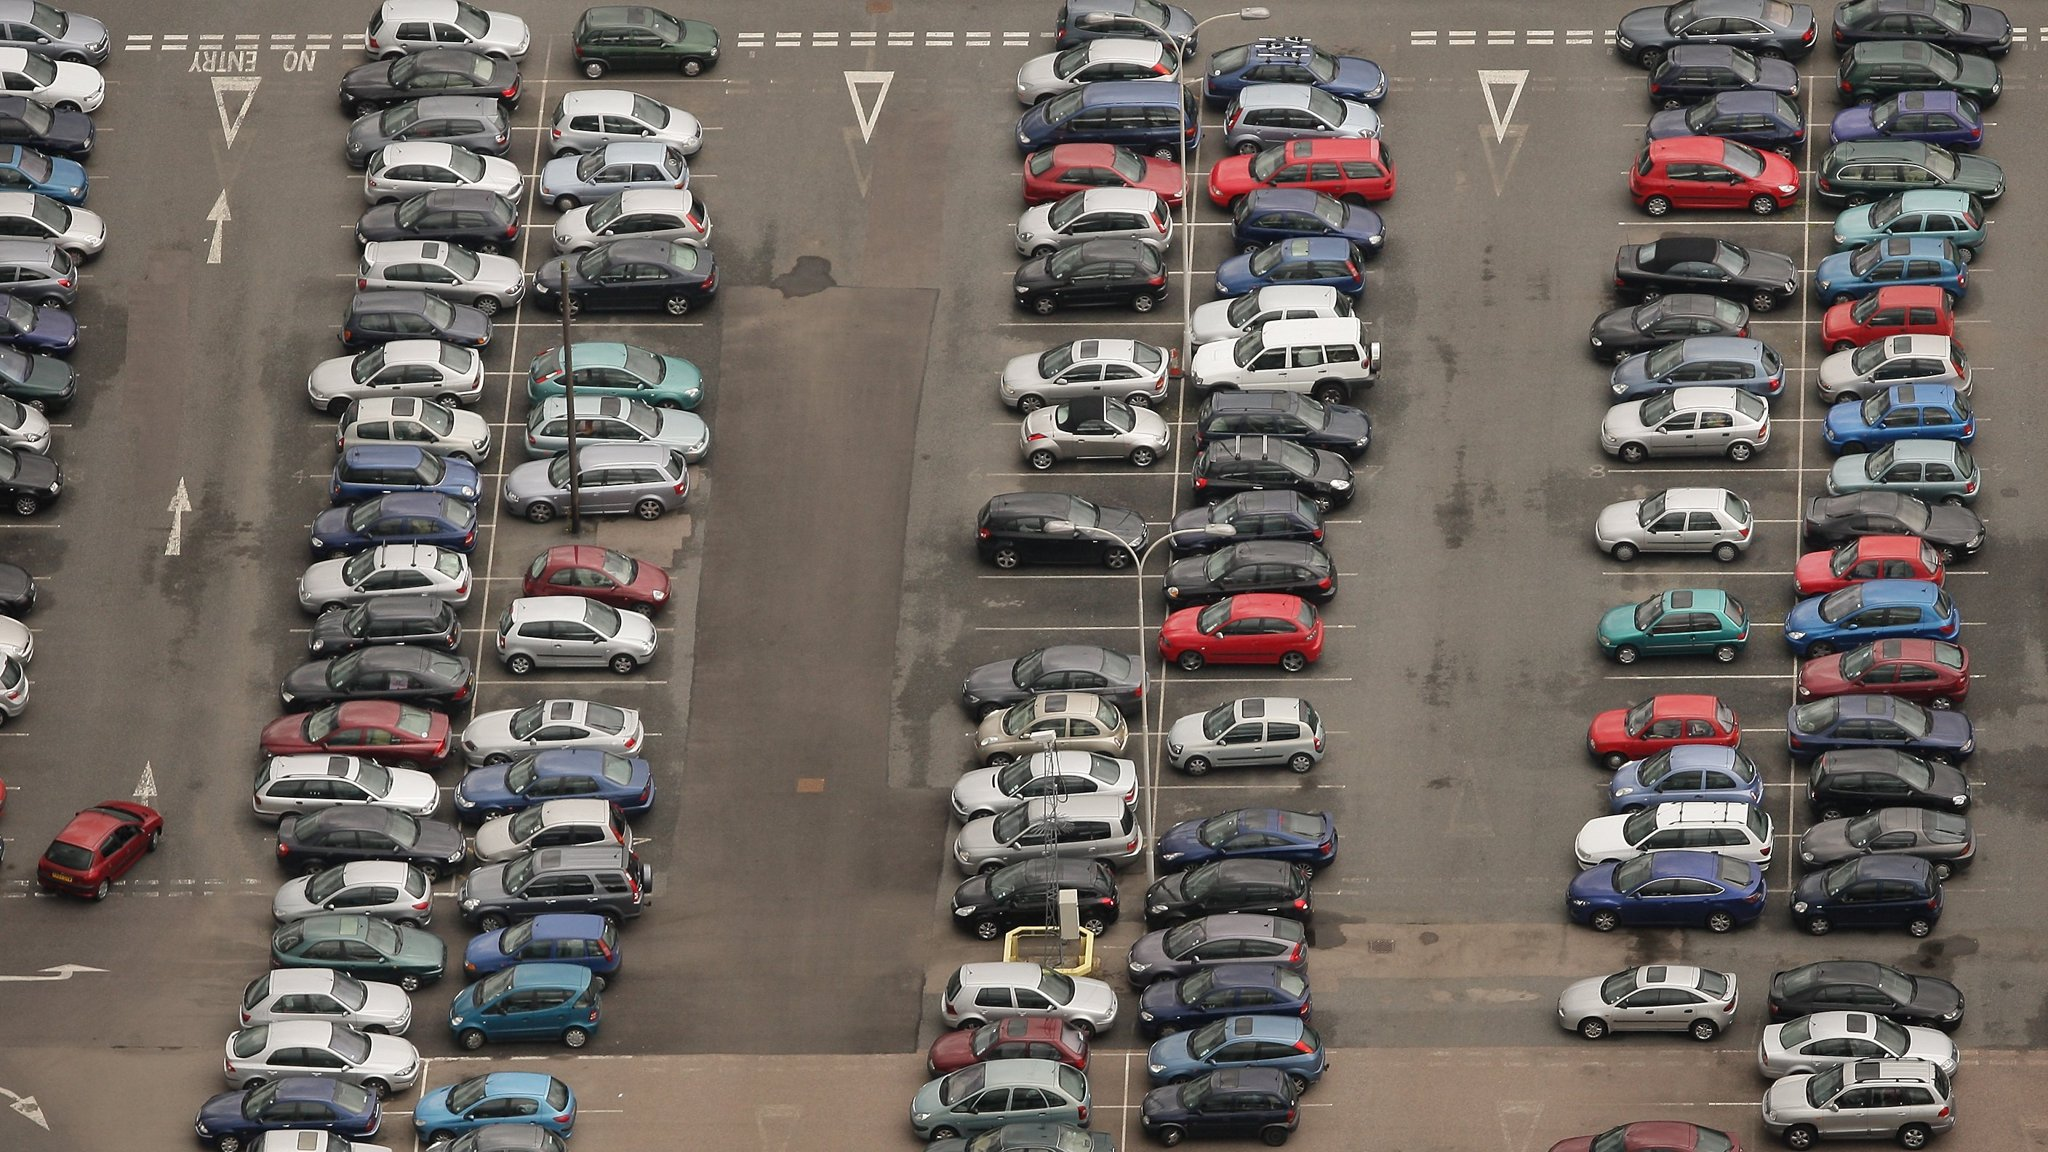 Car Parks Take Urban Culture To New Stage Financial Times